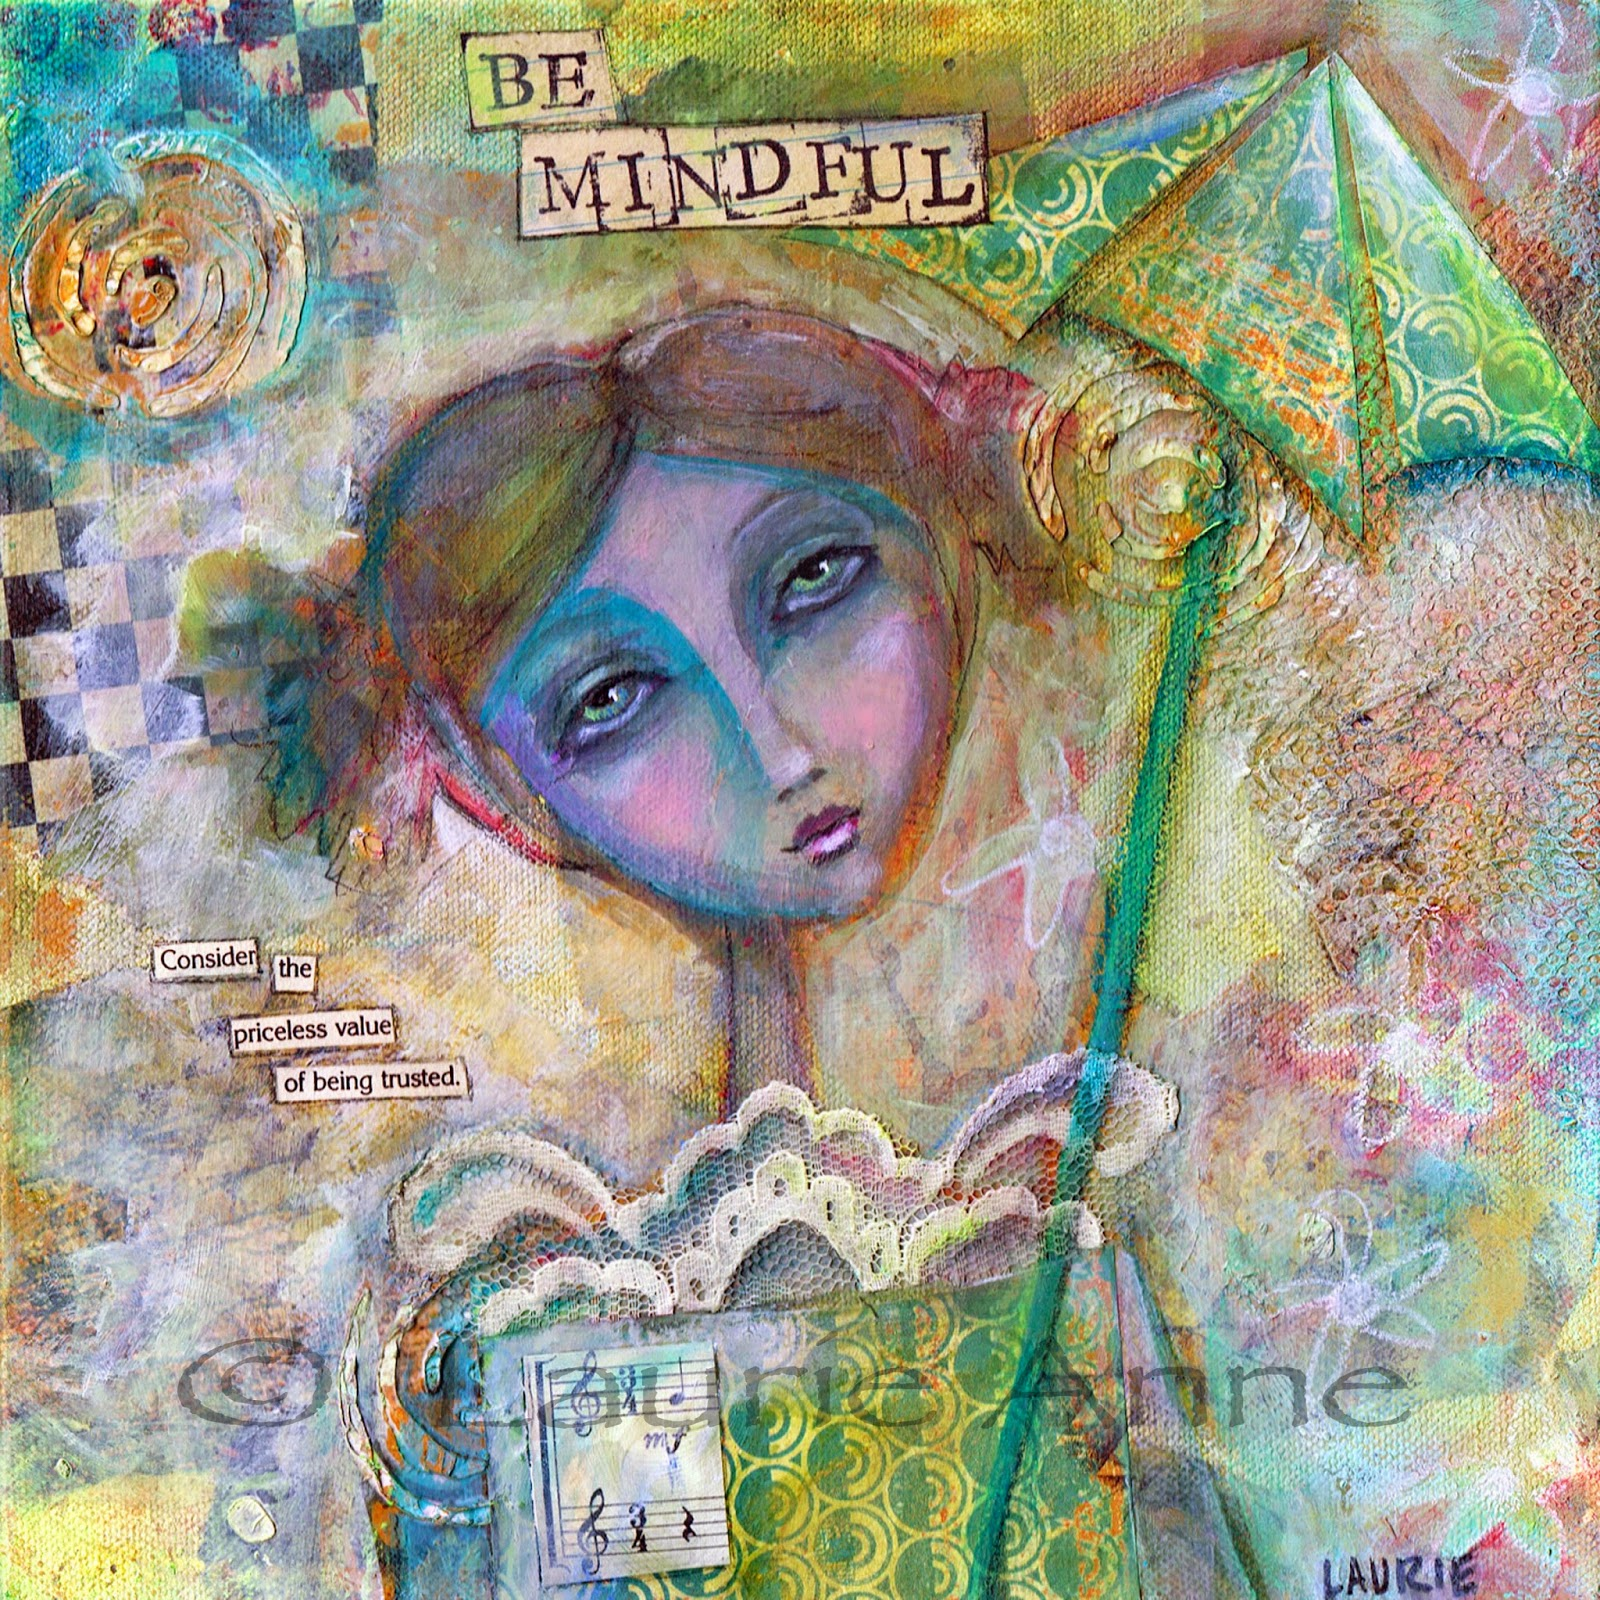 MIxed Media Girl with text and umbrella